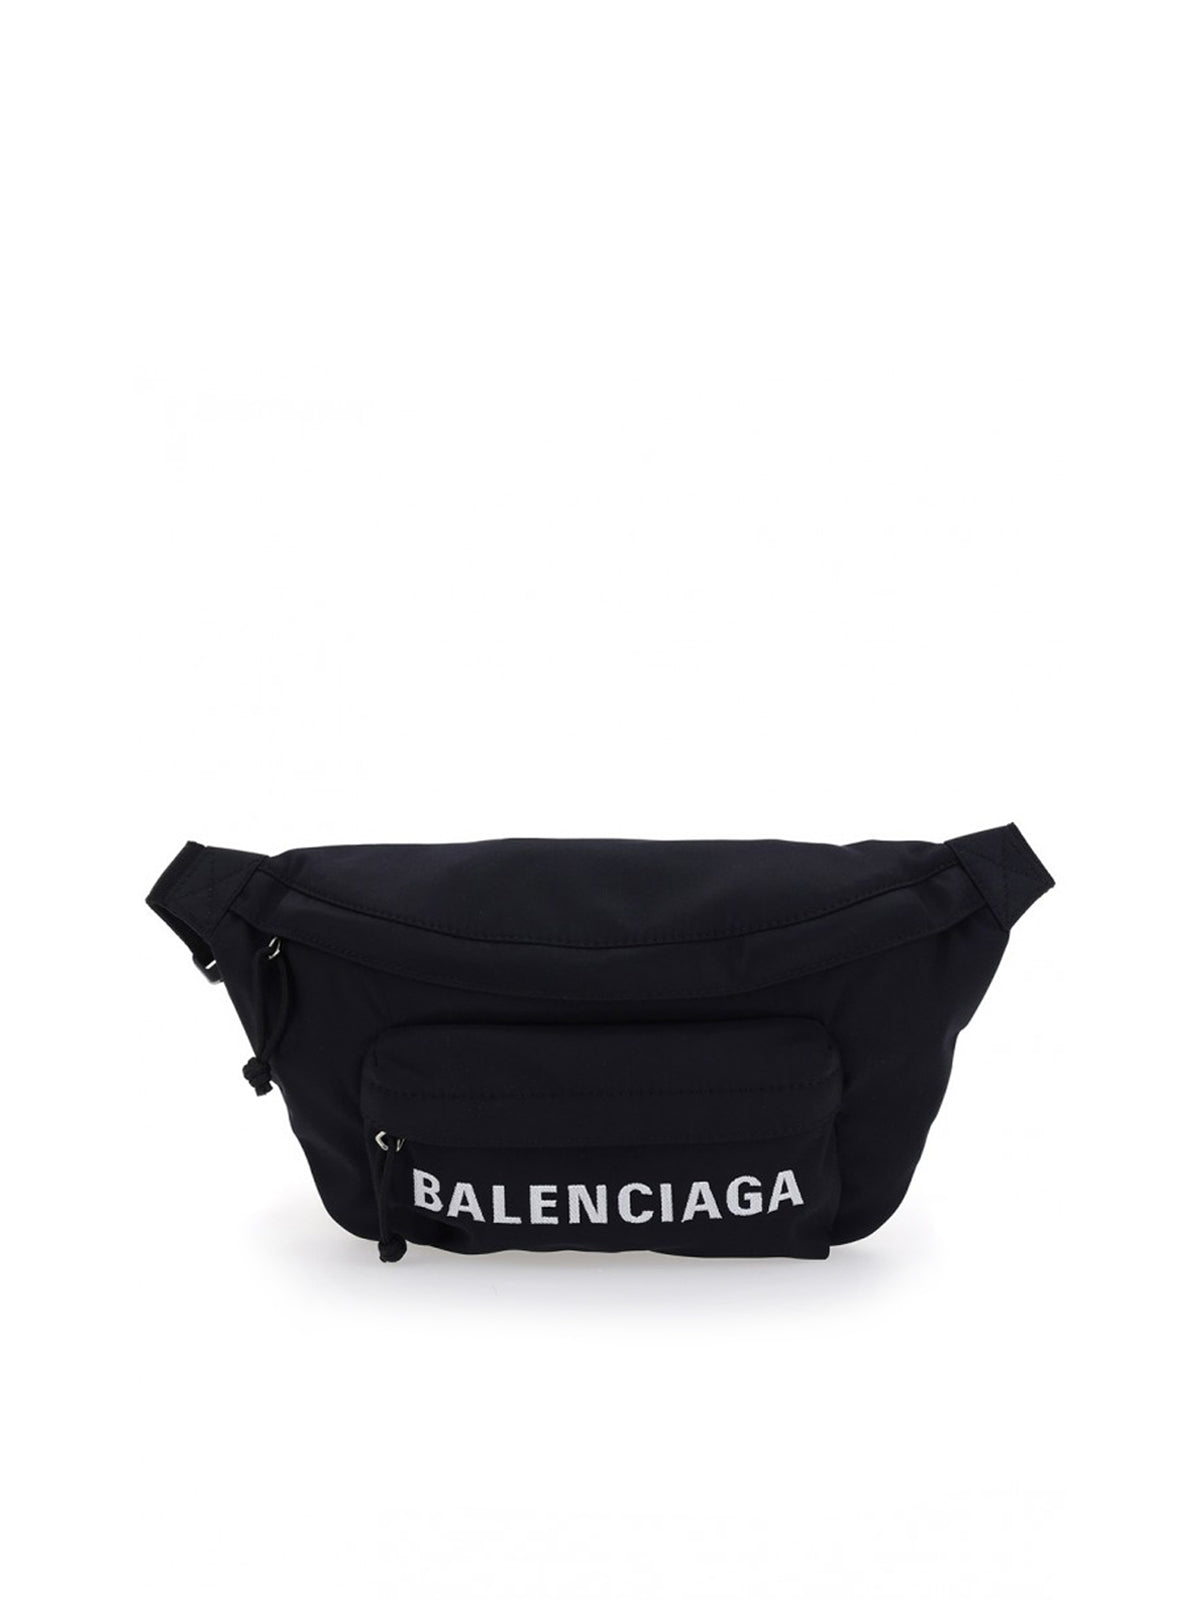 Belt Bag with logo